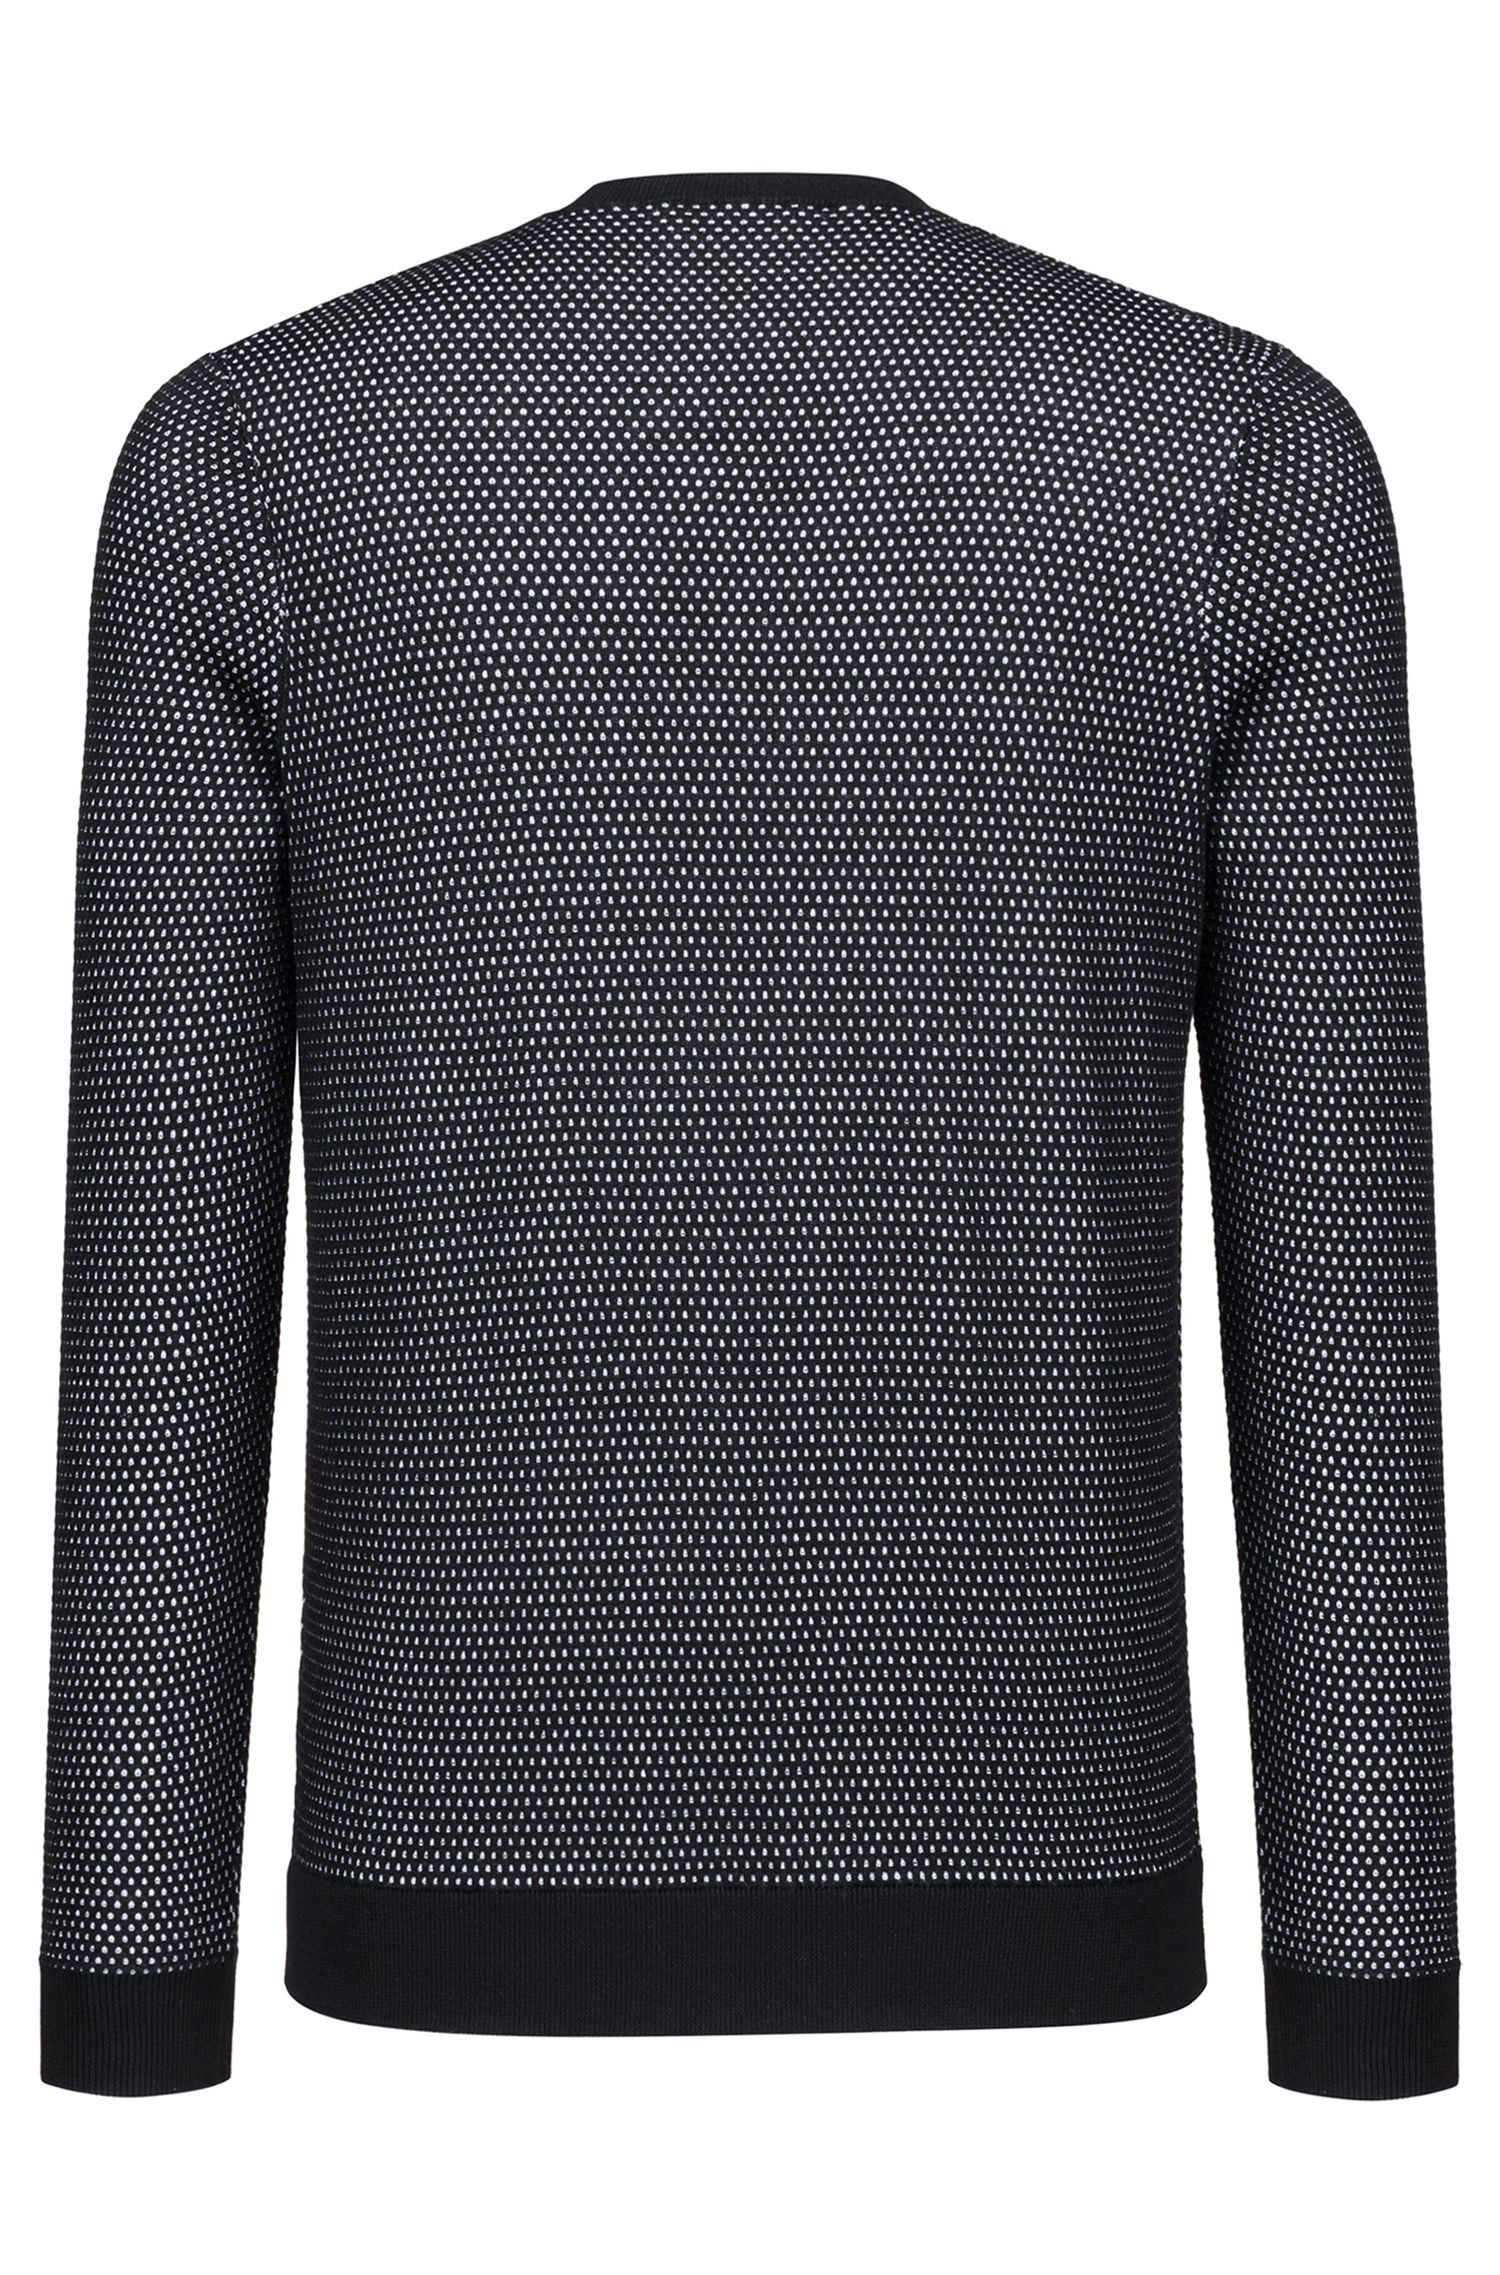 Crew-neck sweater in two-color knitted cotton piqué , Black